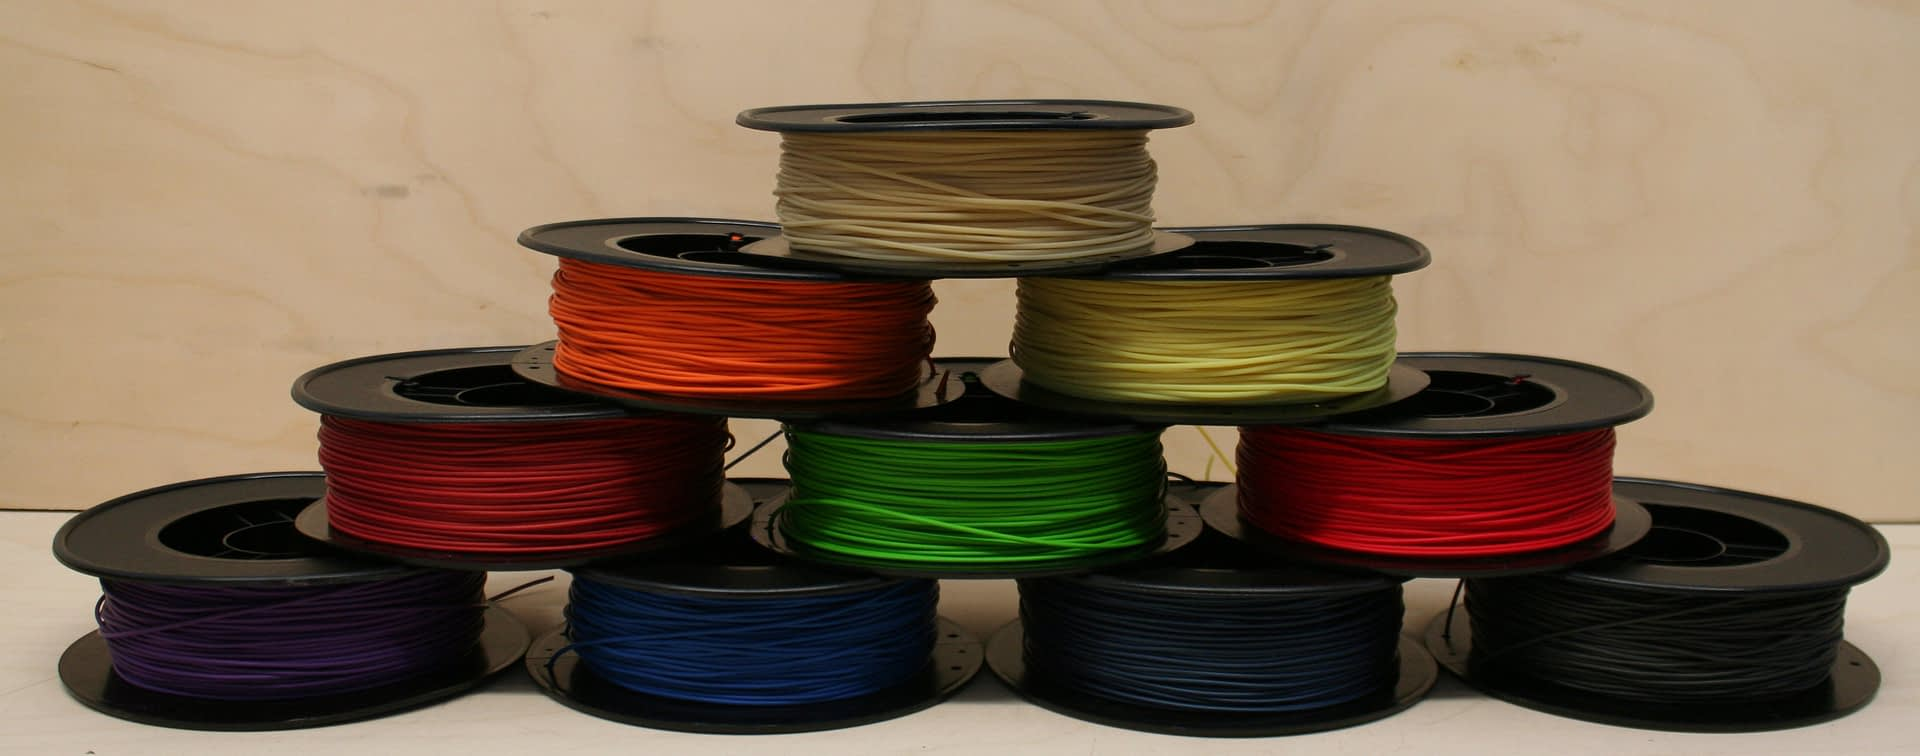 Pyramid of WillowFlex Filament Spools